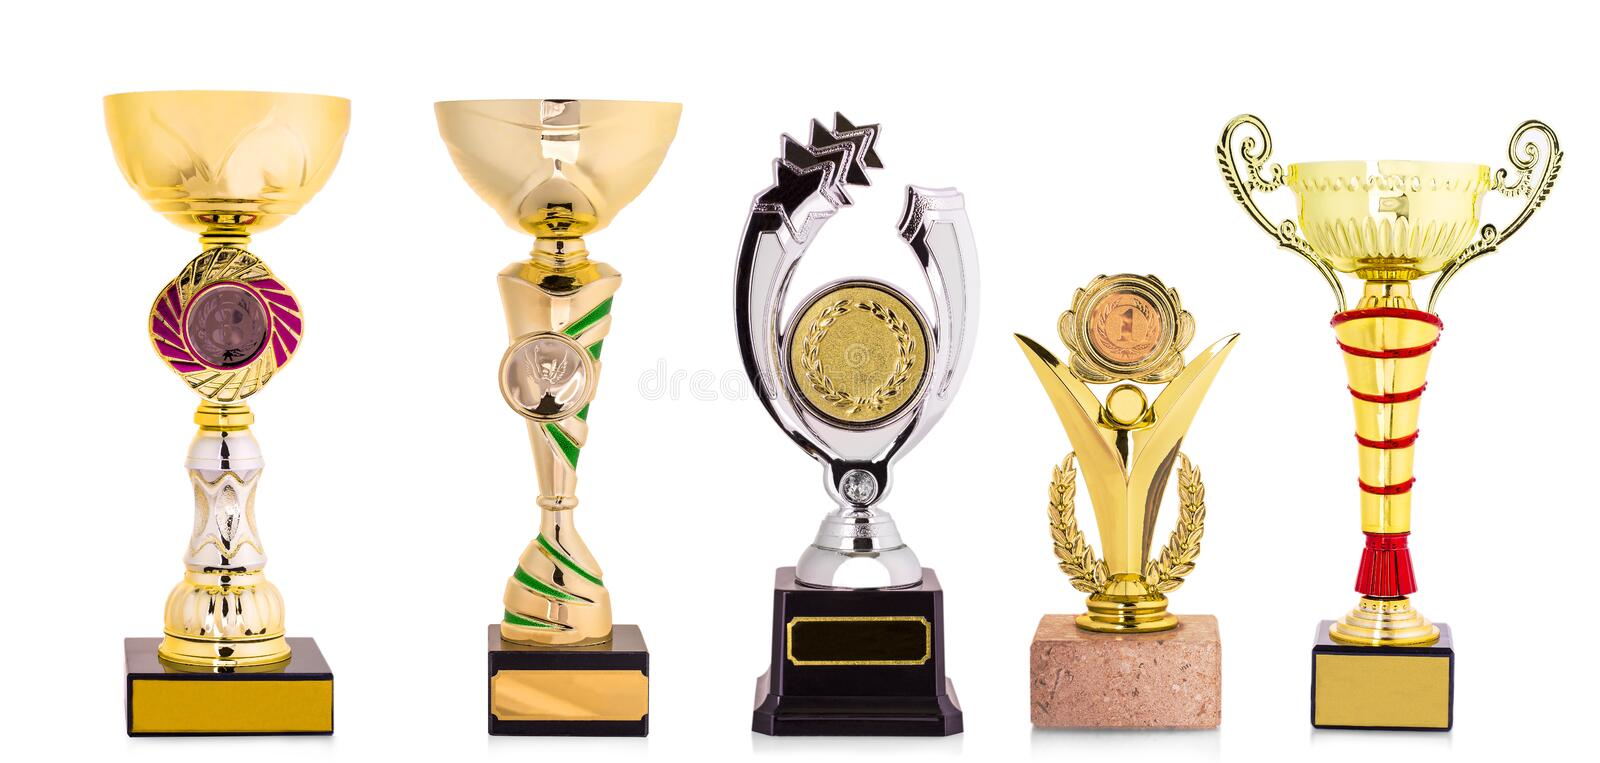 Golden trophy isolated on white background. royalty free stock image